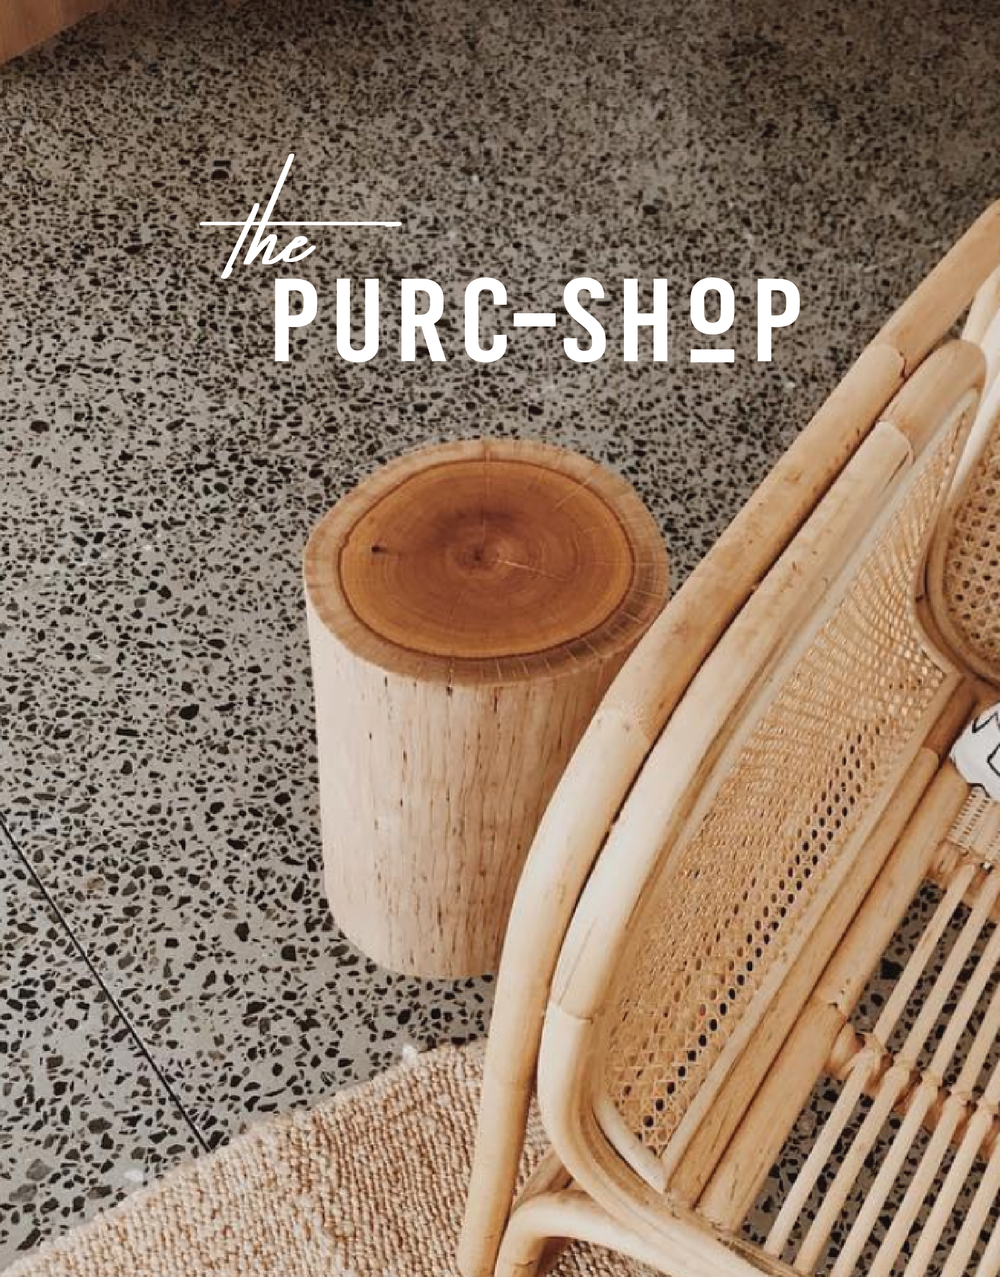 The Purcshop